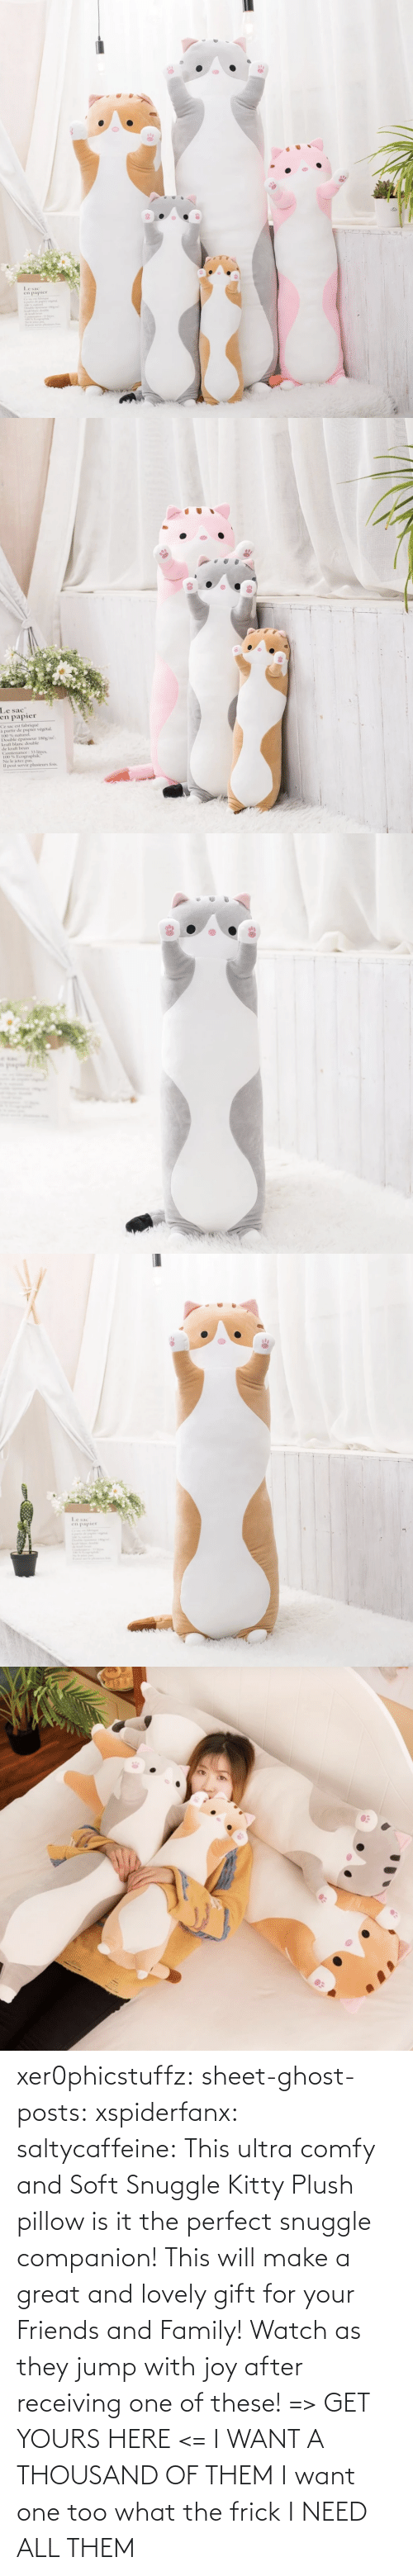 make a: xer0phicstuffz:  sheet-ghost-posts: xspiderfanx:  saltycaffeine:  This ultra comfy and Soft Snuggle Kitty Plush pillow is it the perfect snuggle companion! This will make a great and lovely gift for your Friends and Family! Watch as they jump with joy after receiving one of these! => GET YOURS HERE <=    I WANT A THOUSAND OF THEM  I want one too what the frick    I NEED ALL THEM